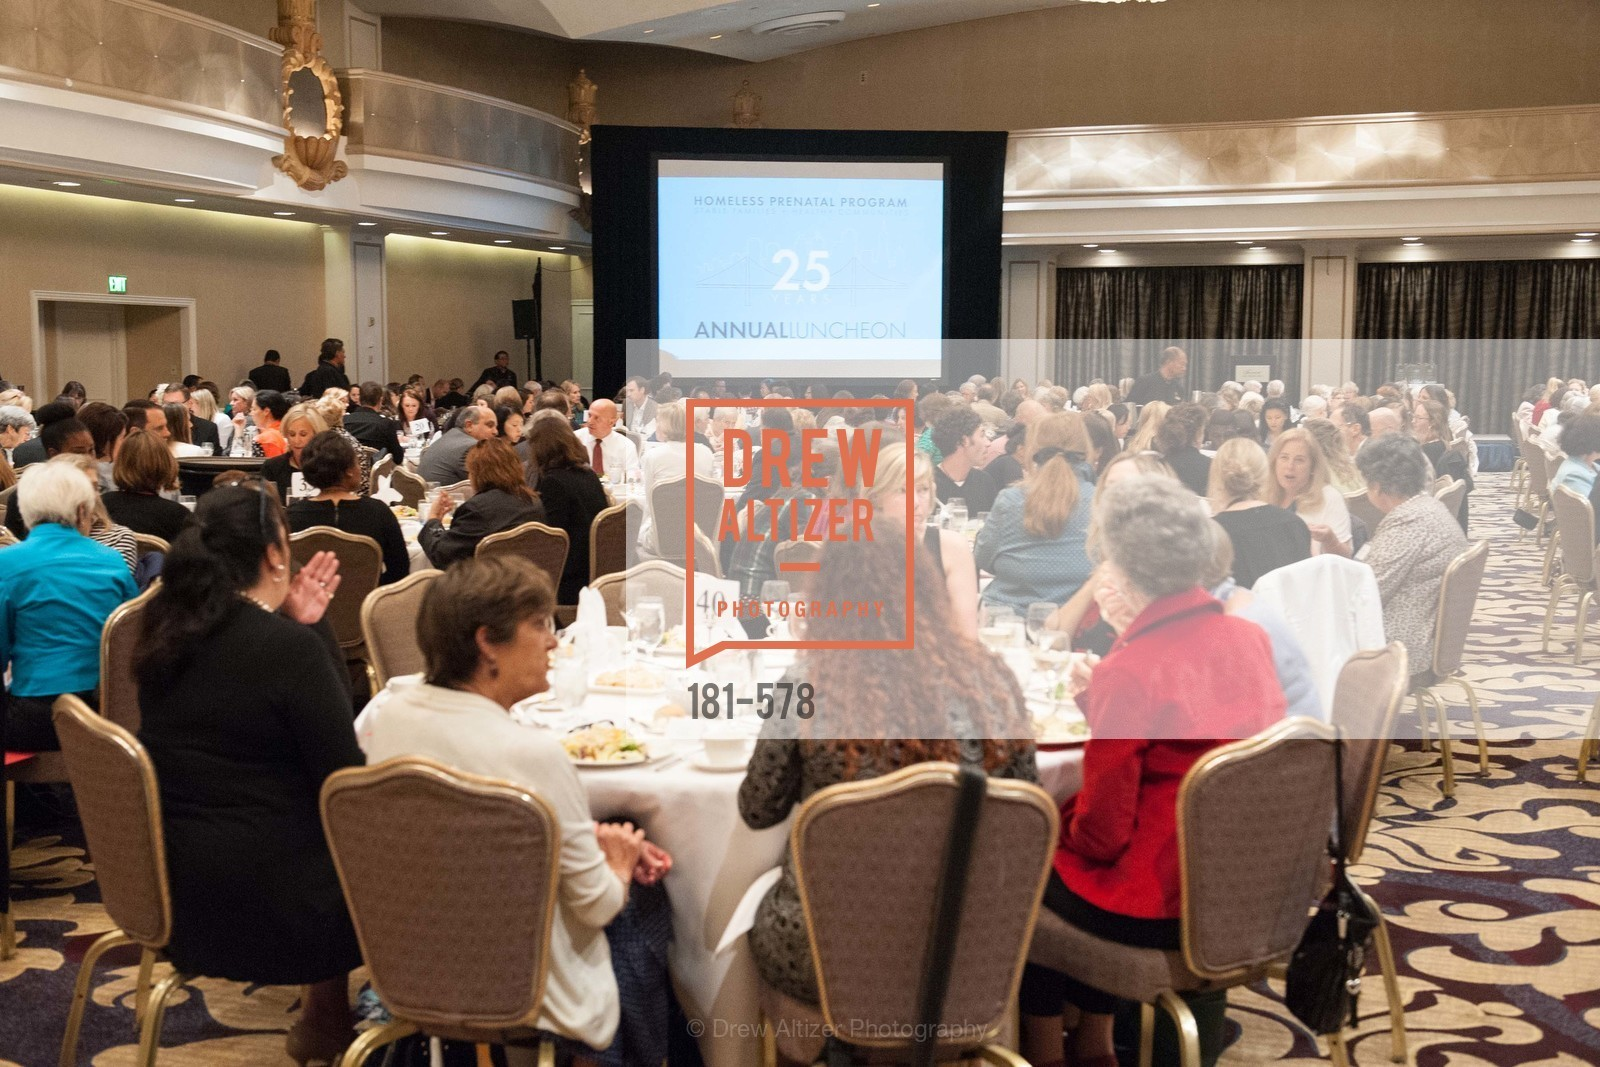 Atmosphere, HOMELESS PRENATAL Annual Luncheon 2014, US, October 1st, 2014,Drew Altizer, Drew Altizer Photography, full-service agency, private events, San Francisco photographer, photographer california